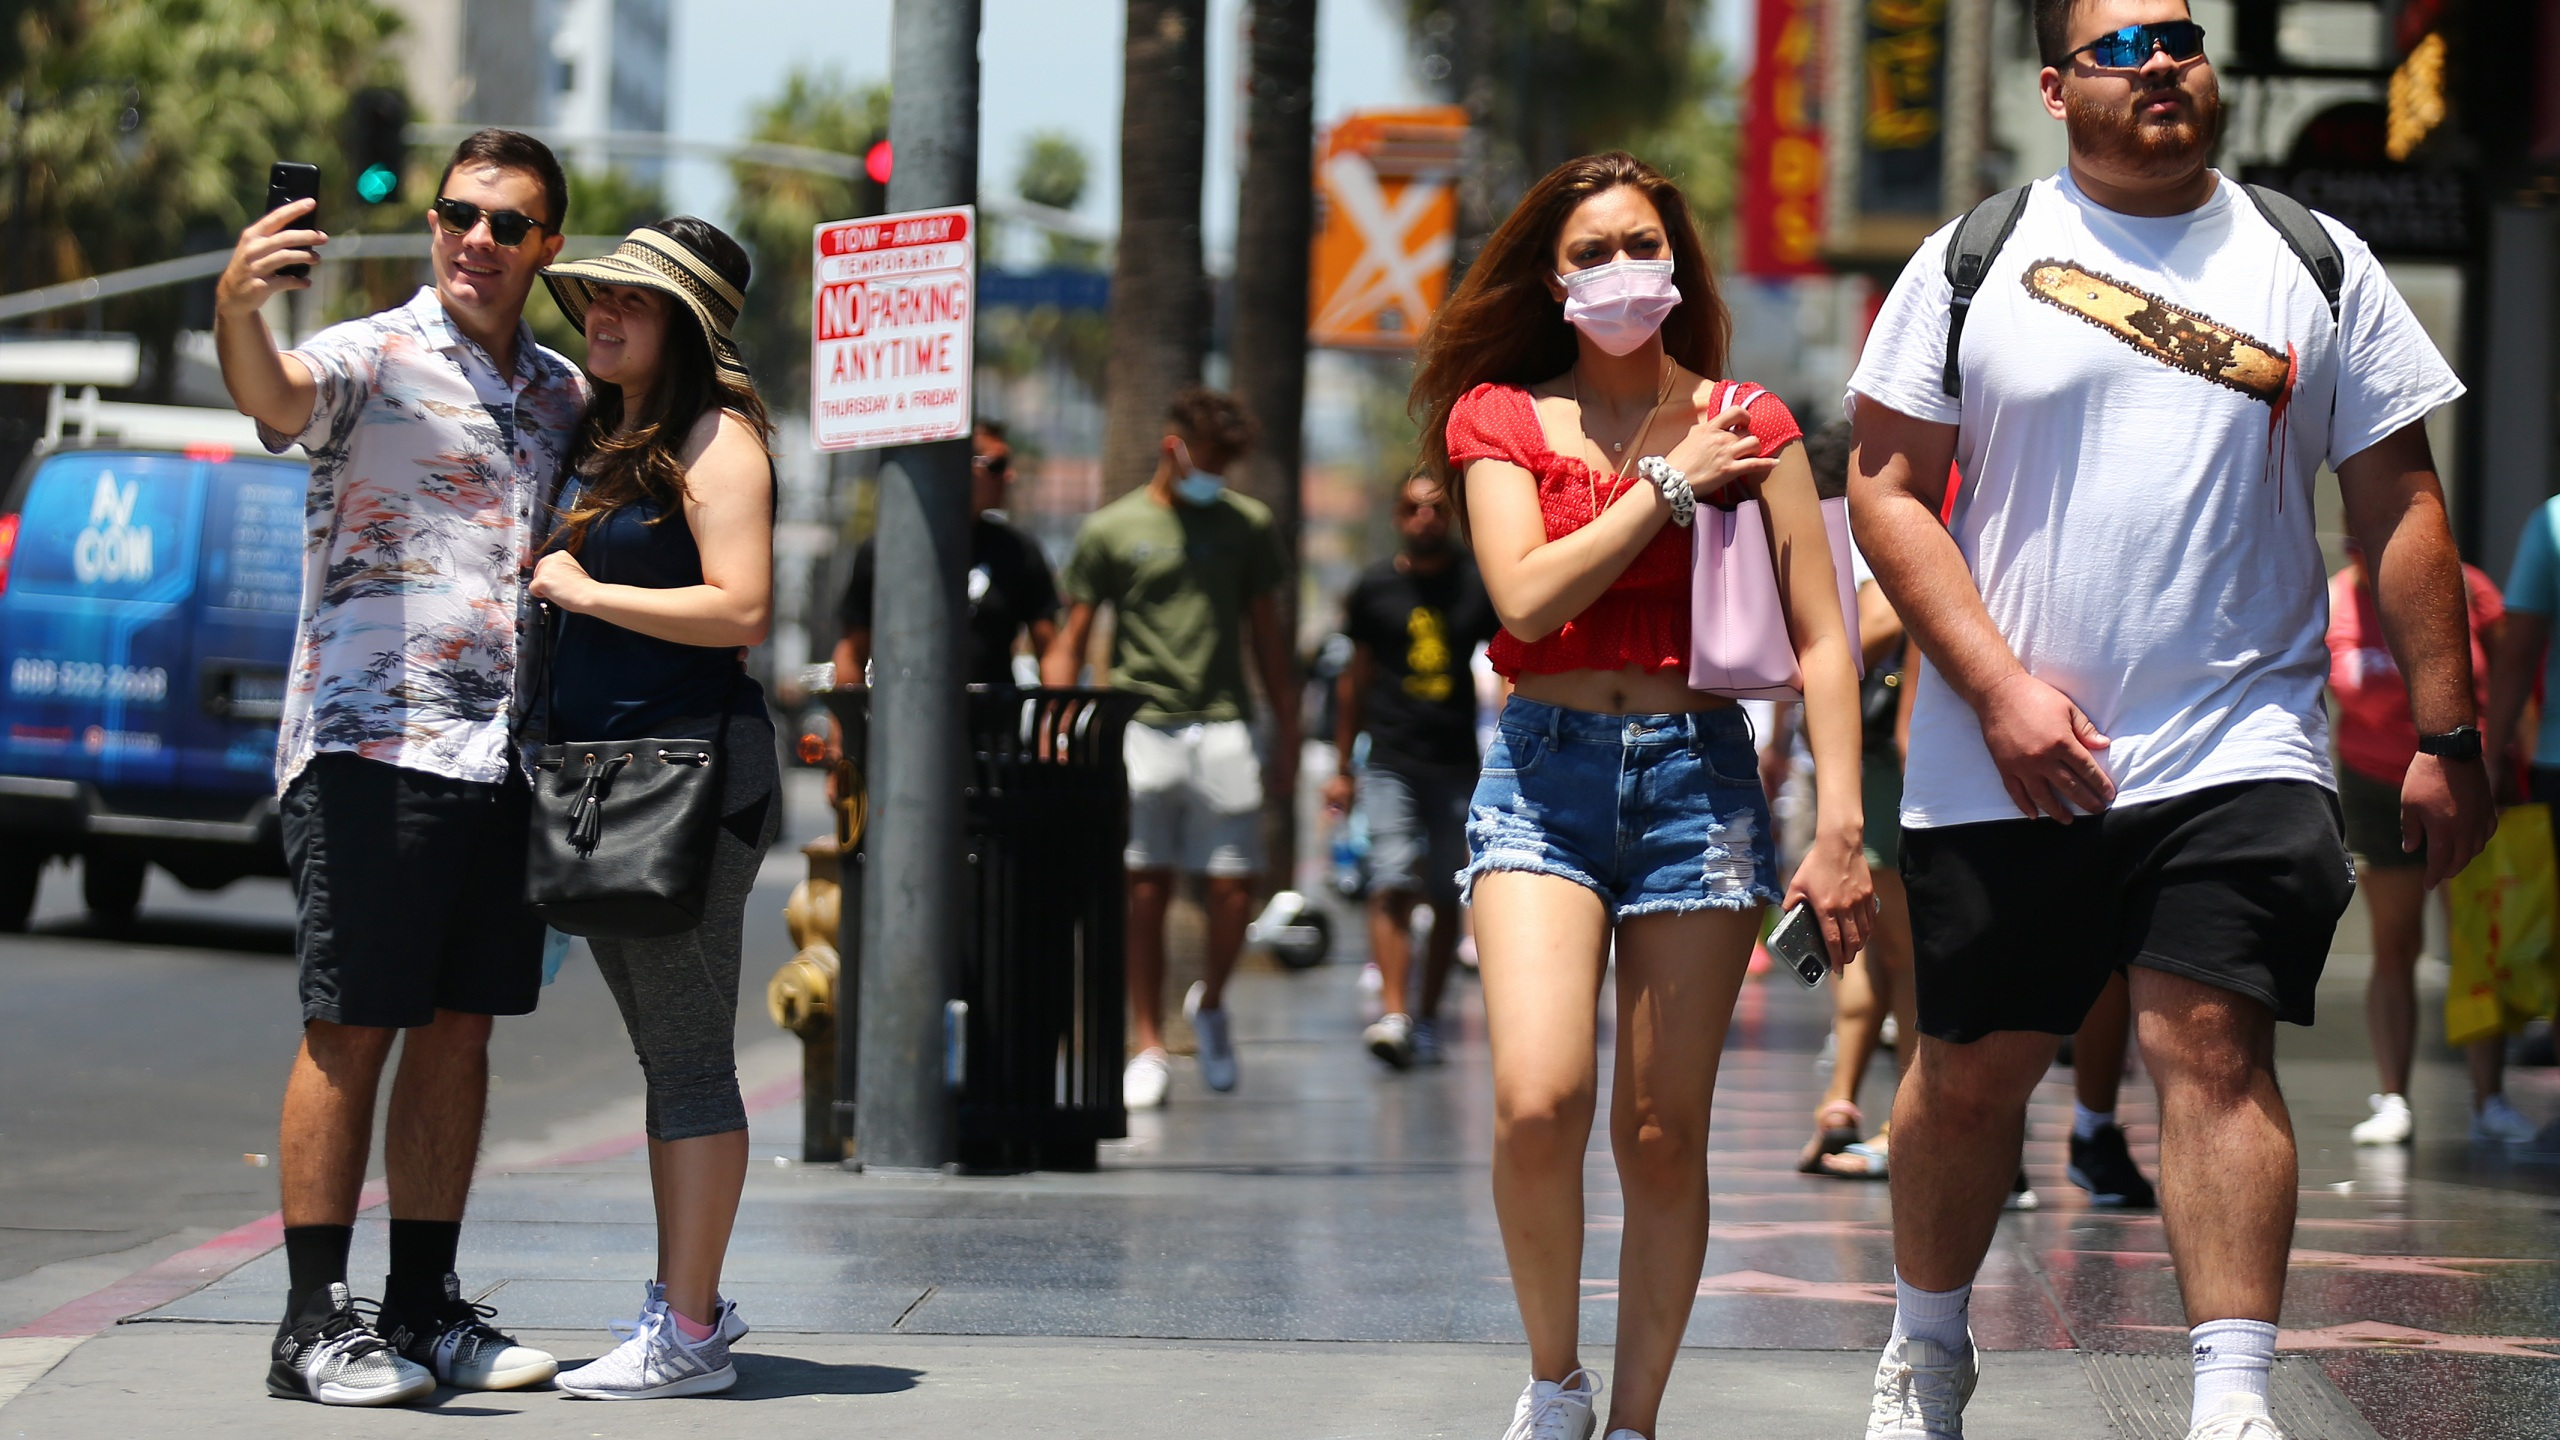 People walk and take photos on Hollywood Boulevard on June 15, 2021. (Mario Tama / Getty Images)